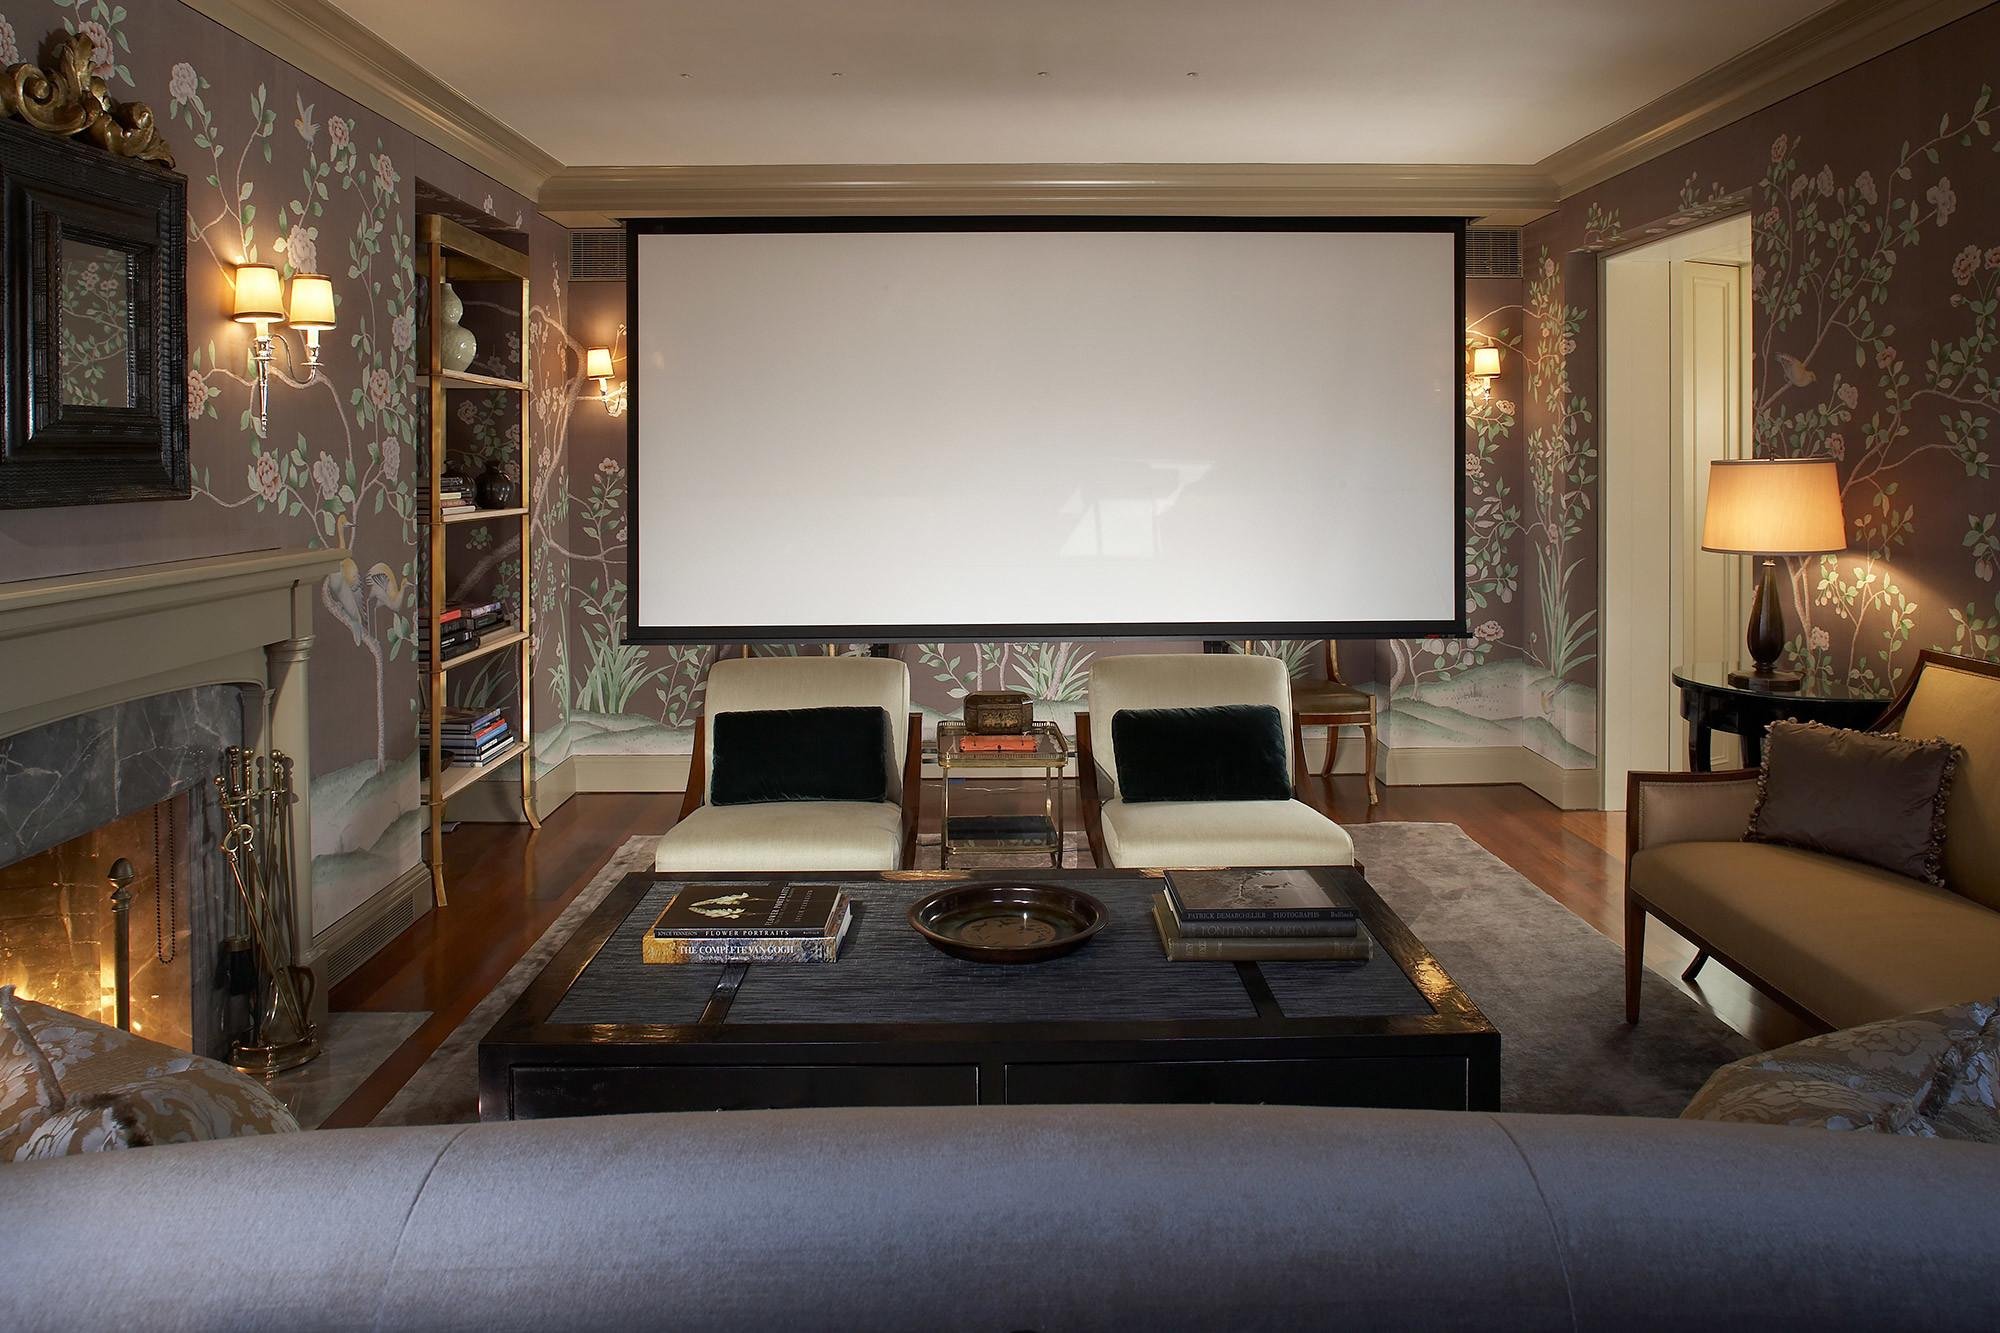 Home Theaterideas Features Inspiring Interiorious